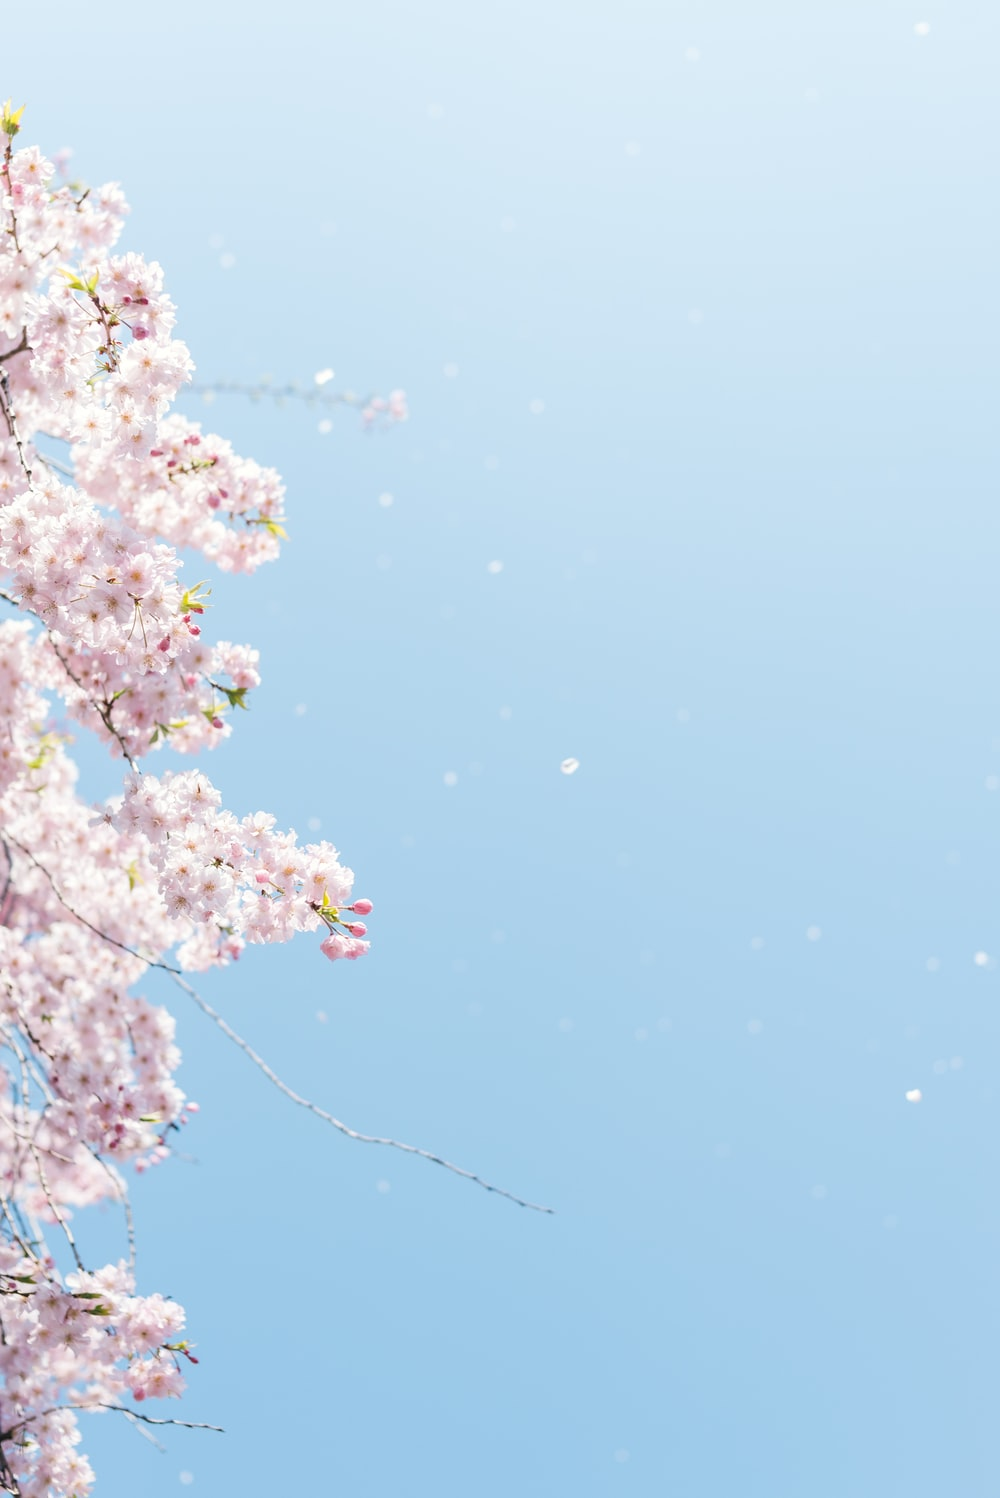 cherry blossom under blue sky